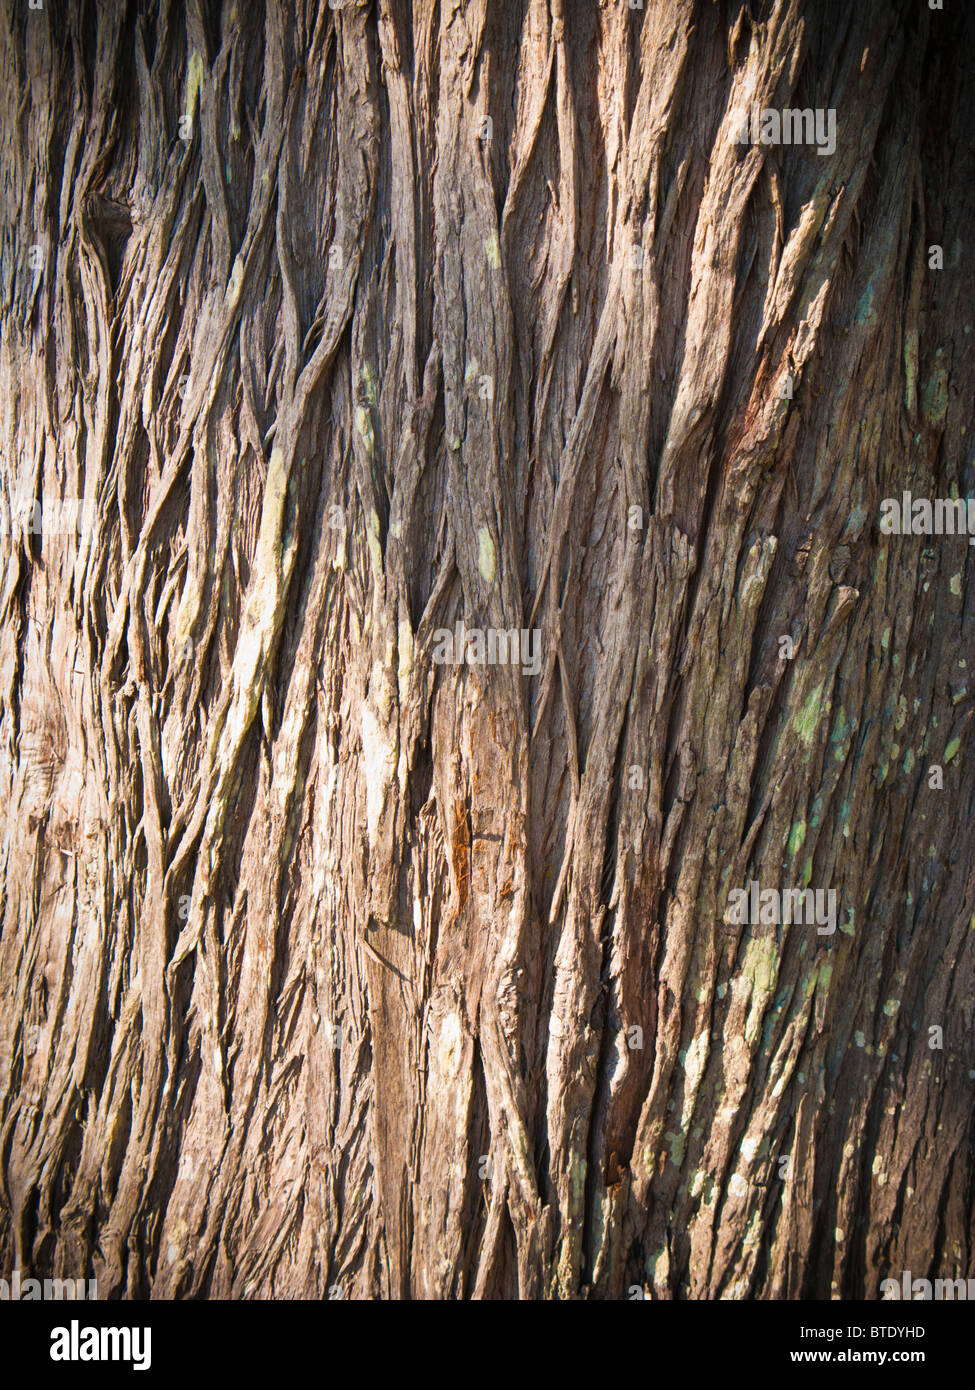 Tree bark close up - Stock Image